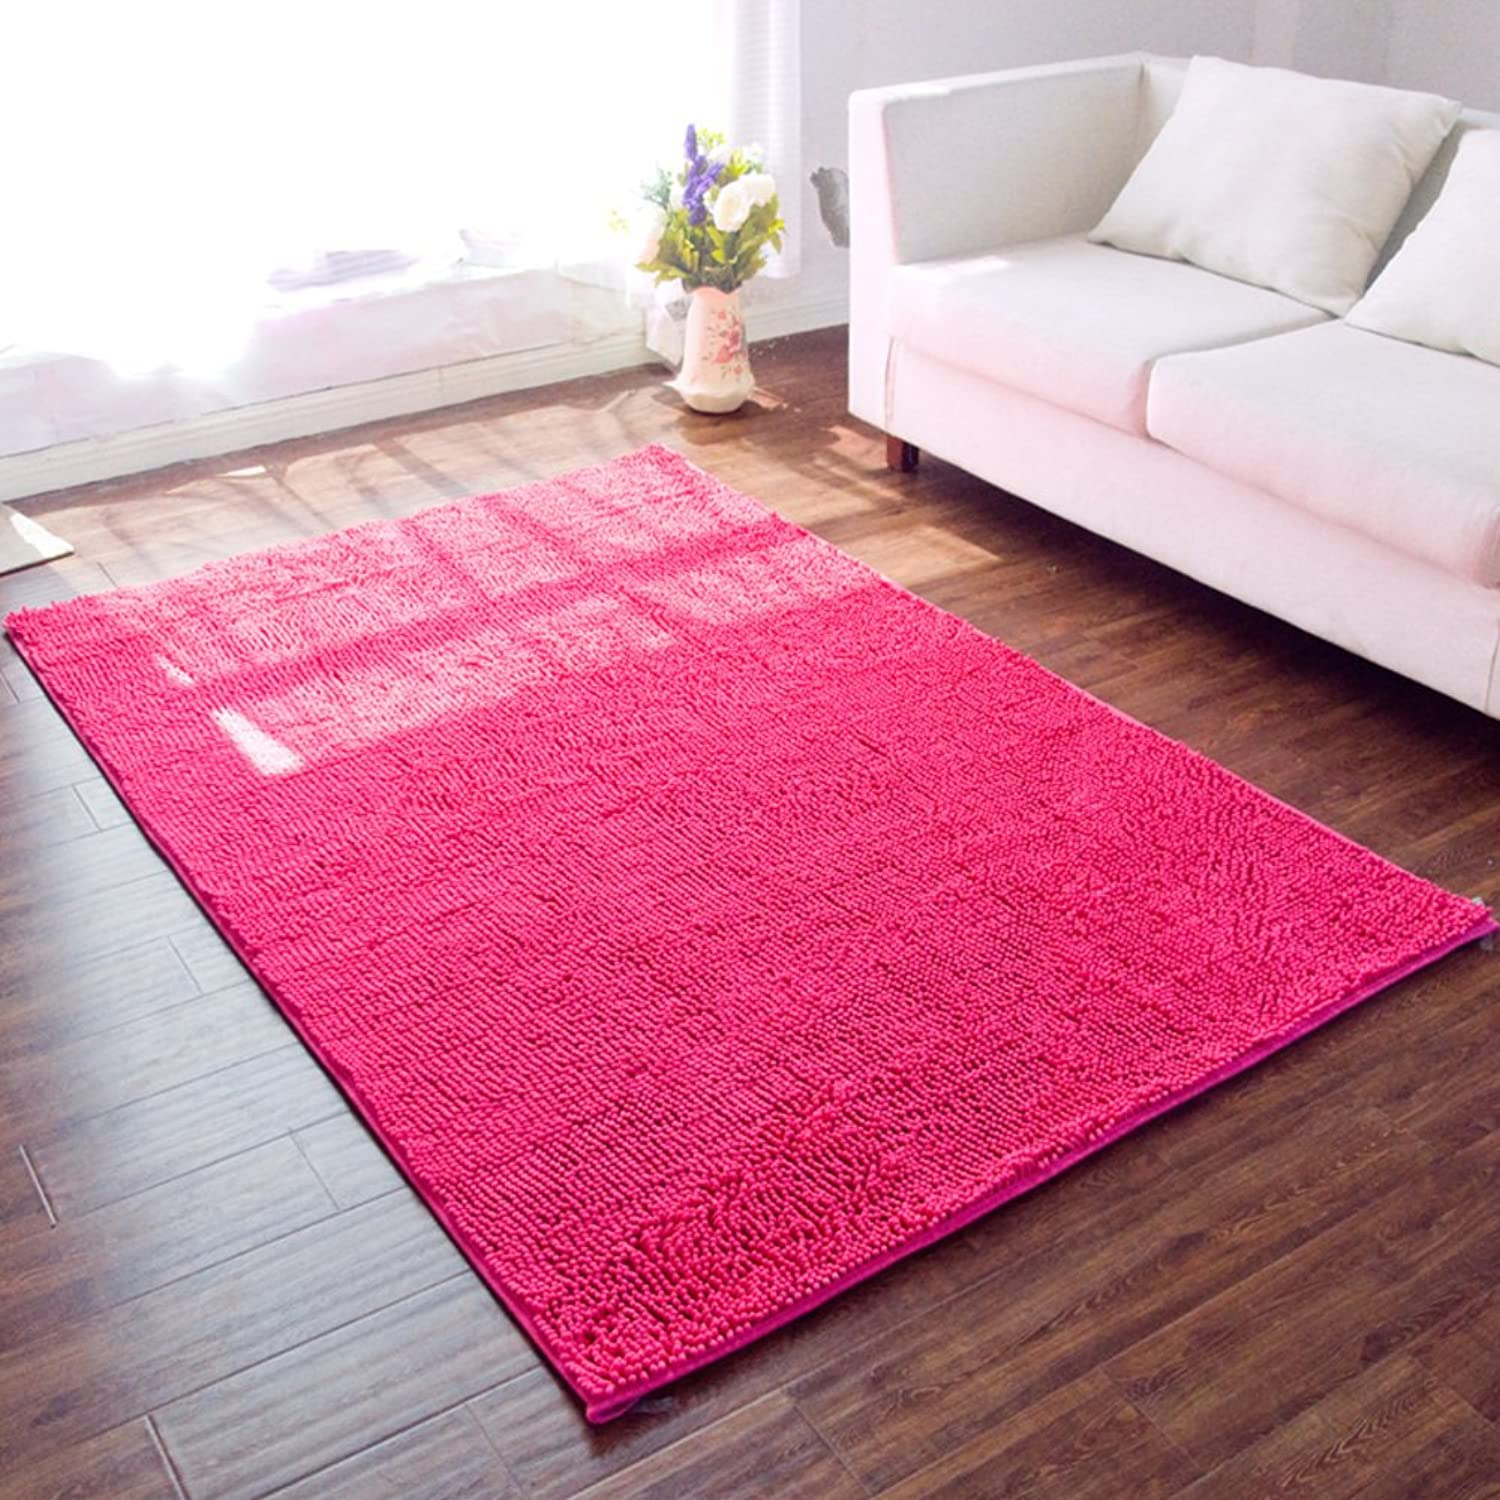 Doormat Chenille mat Anti-skidding,[Absorbent],Chenille,Living Room mat Kitchen,Health,Door mat-F 200x250cm(79x98inch)